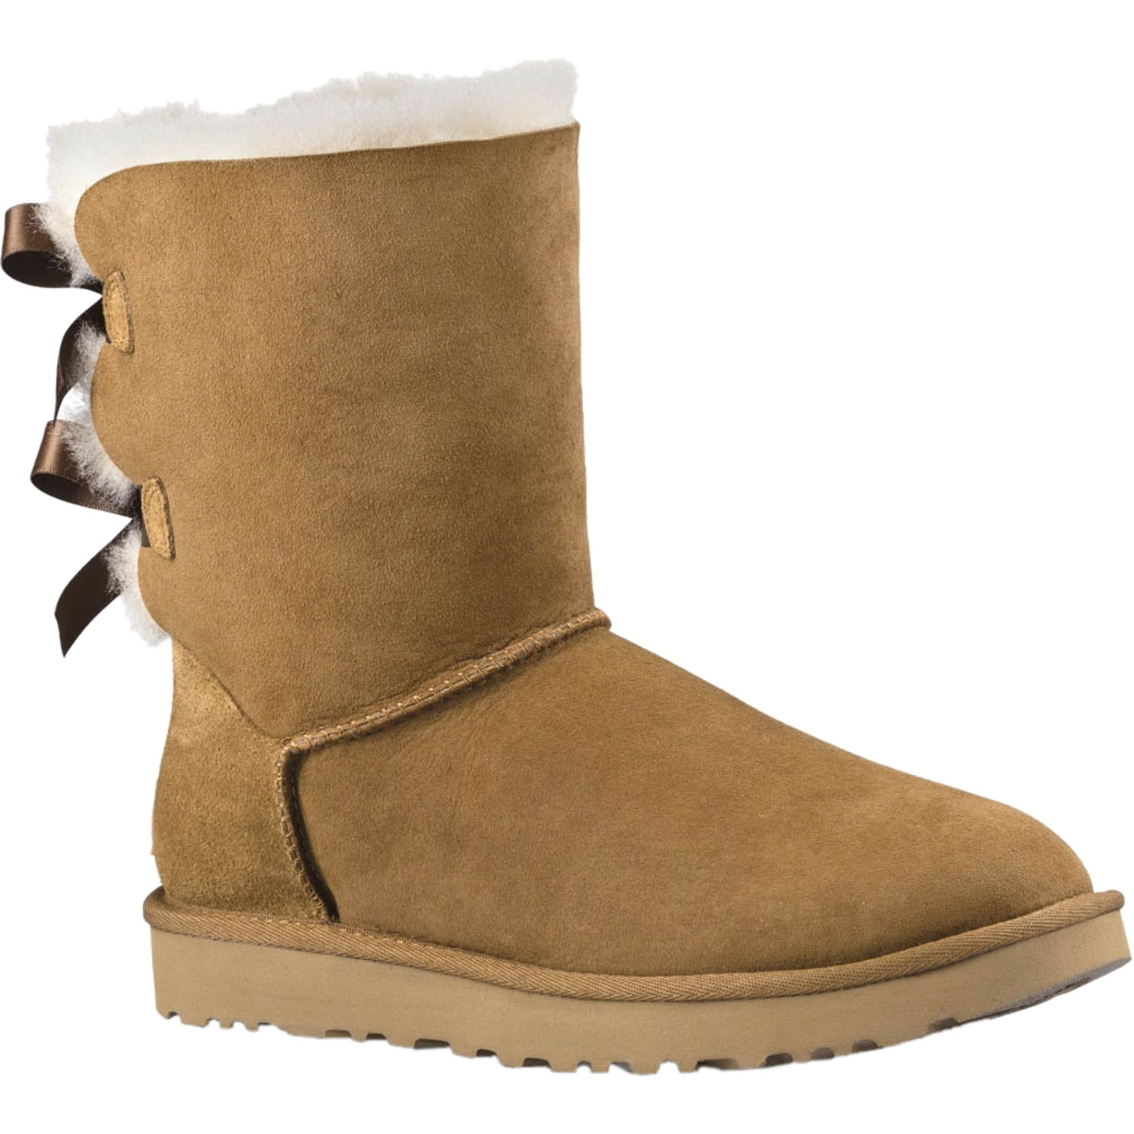 ed1f8a4e9f5 Ugg Bailey Bow Ii Short Boots | Booties | Shoes | Shop The Exchange